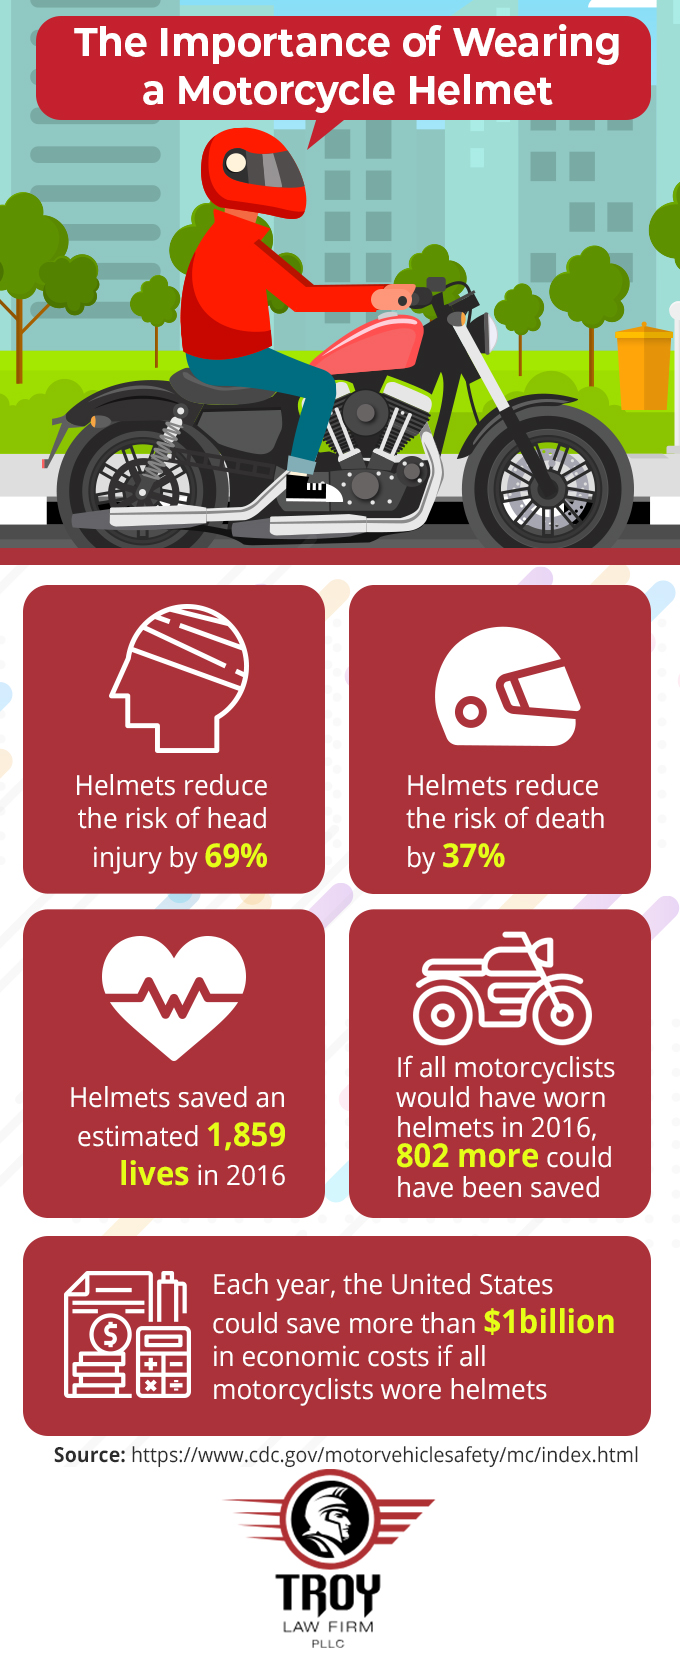 Importance of wearing a motorcycle helmet infographic